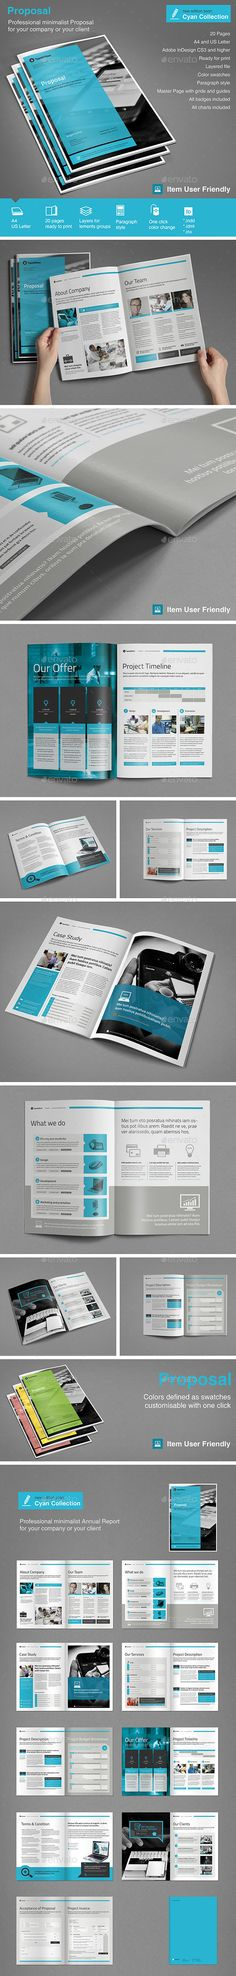 Proposal Template | #proposal #proposaltemplate | Download: http://graphicriver.net/item/proposal/9662242?ref=ksioks